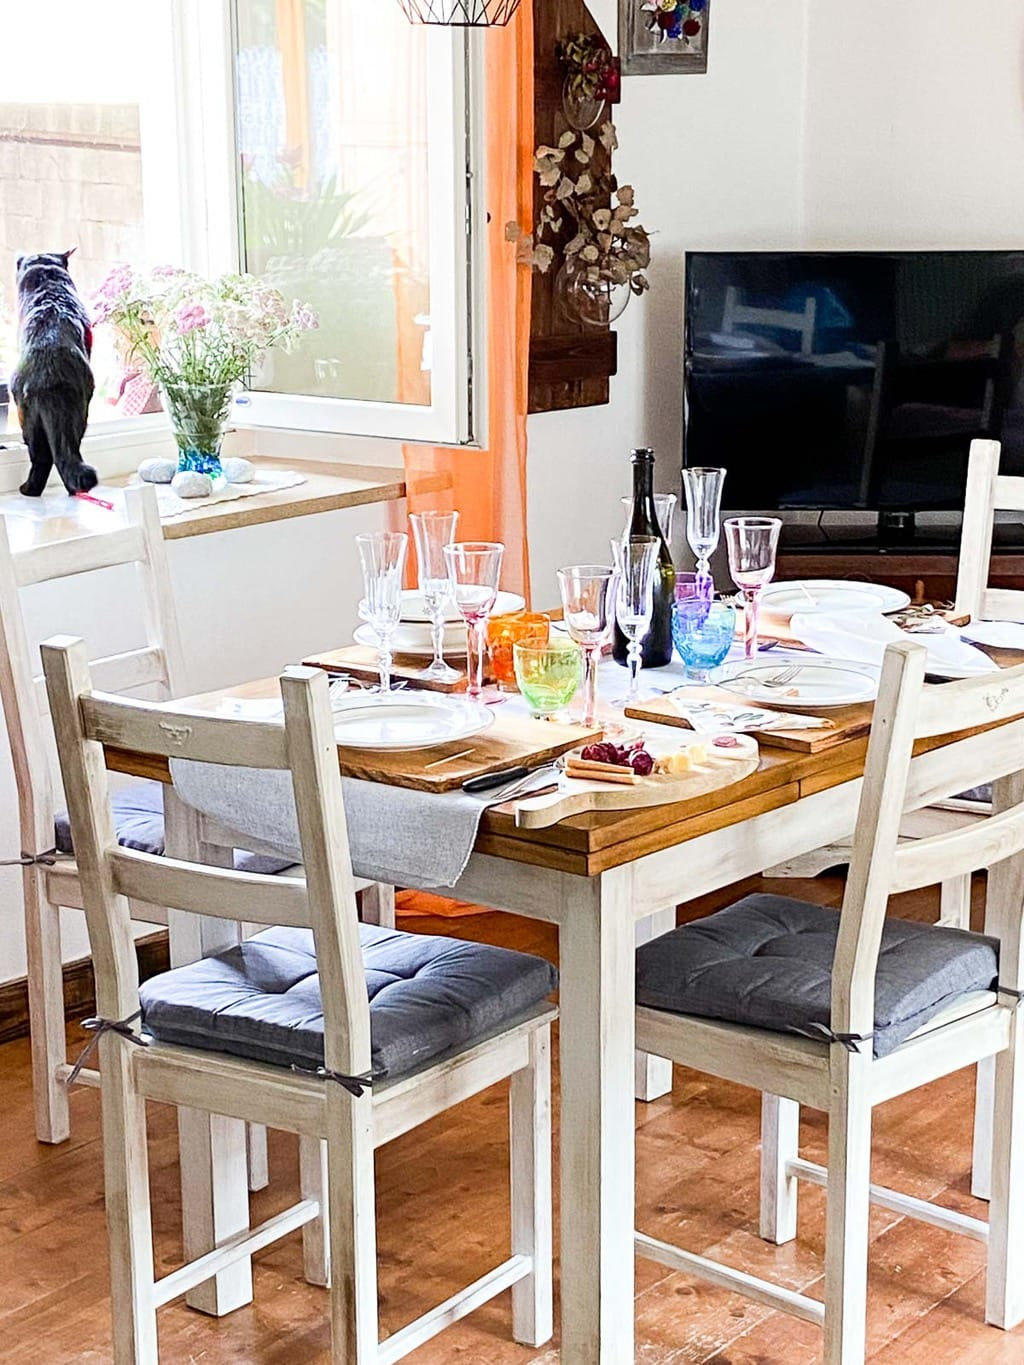 Vertical photo of the dining room table setting with Mirtillo, the family cat in the window.